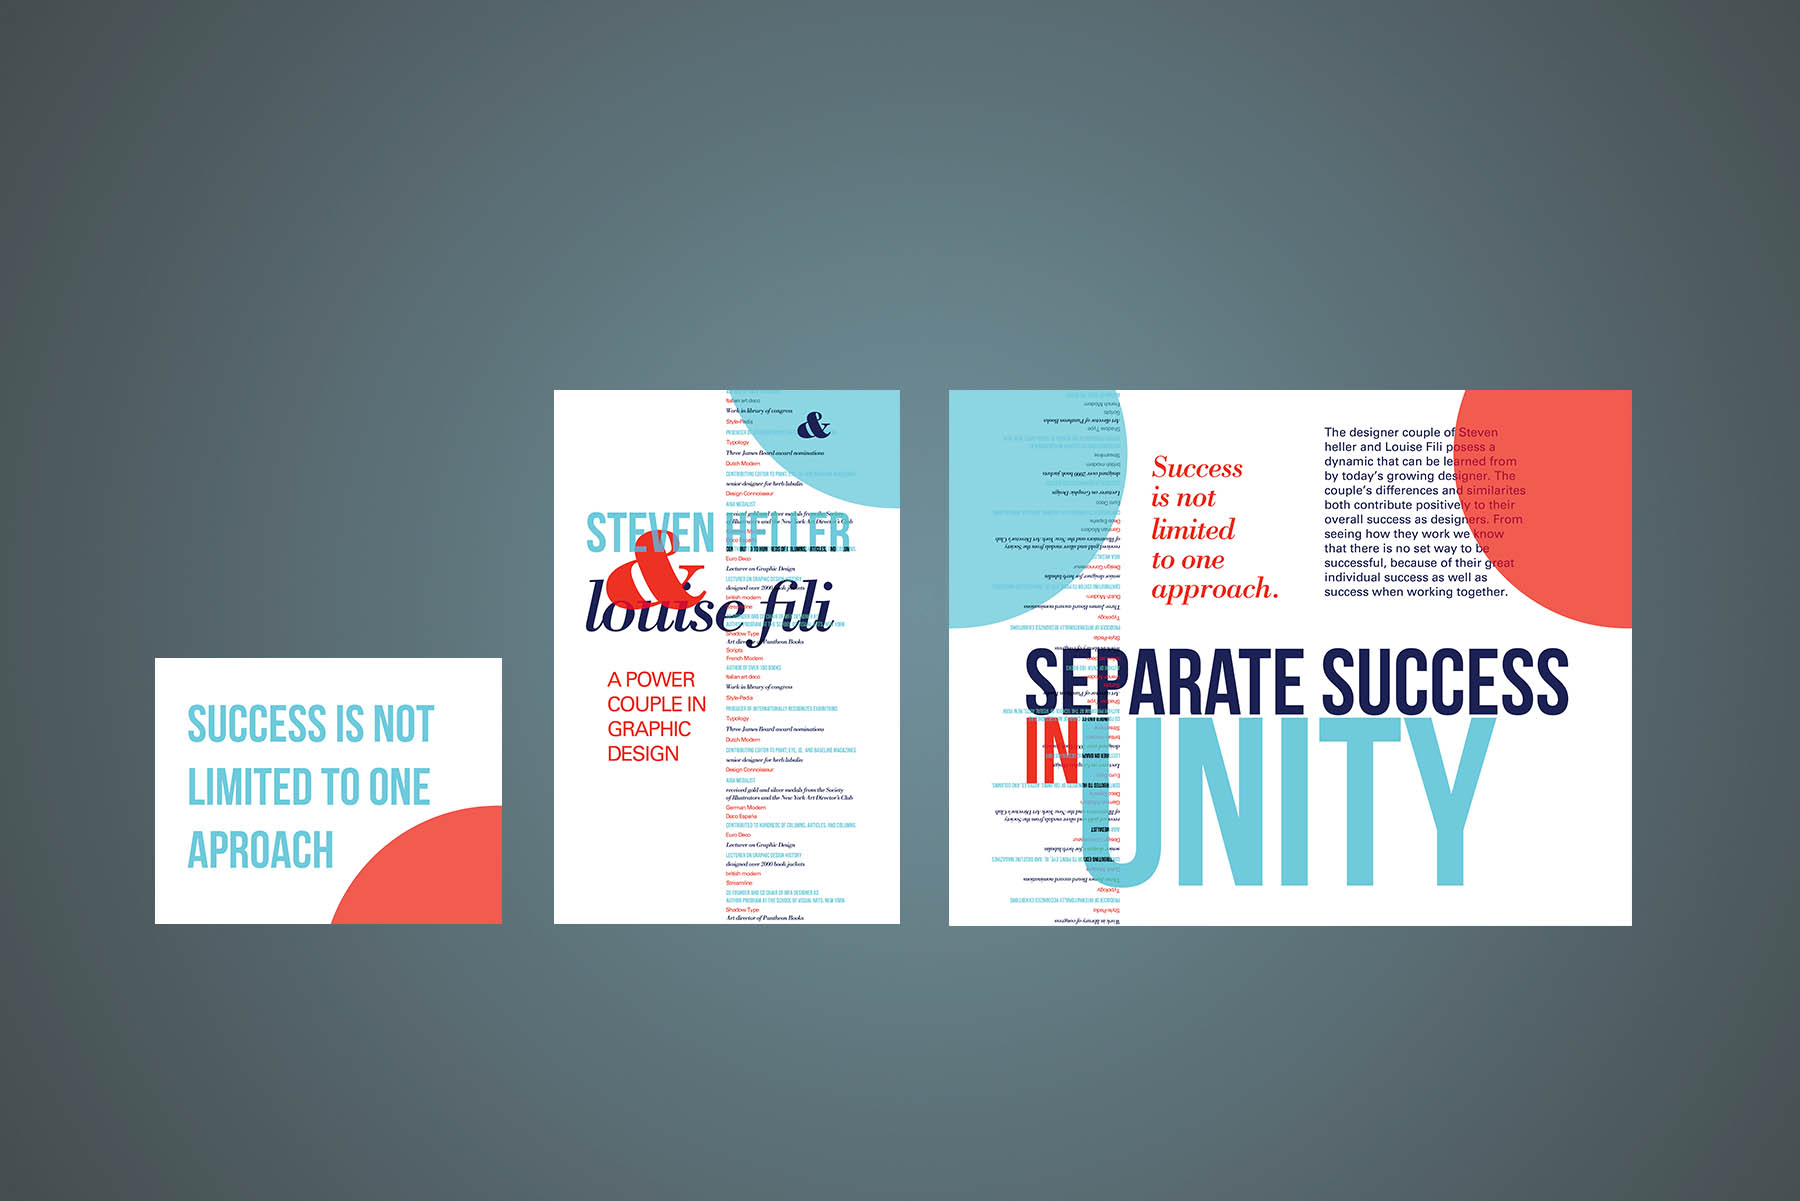 Separate Success in Unity